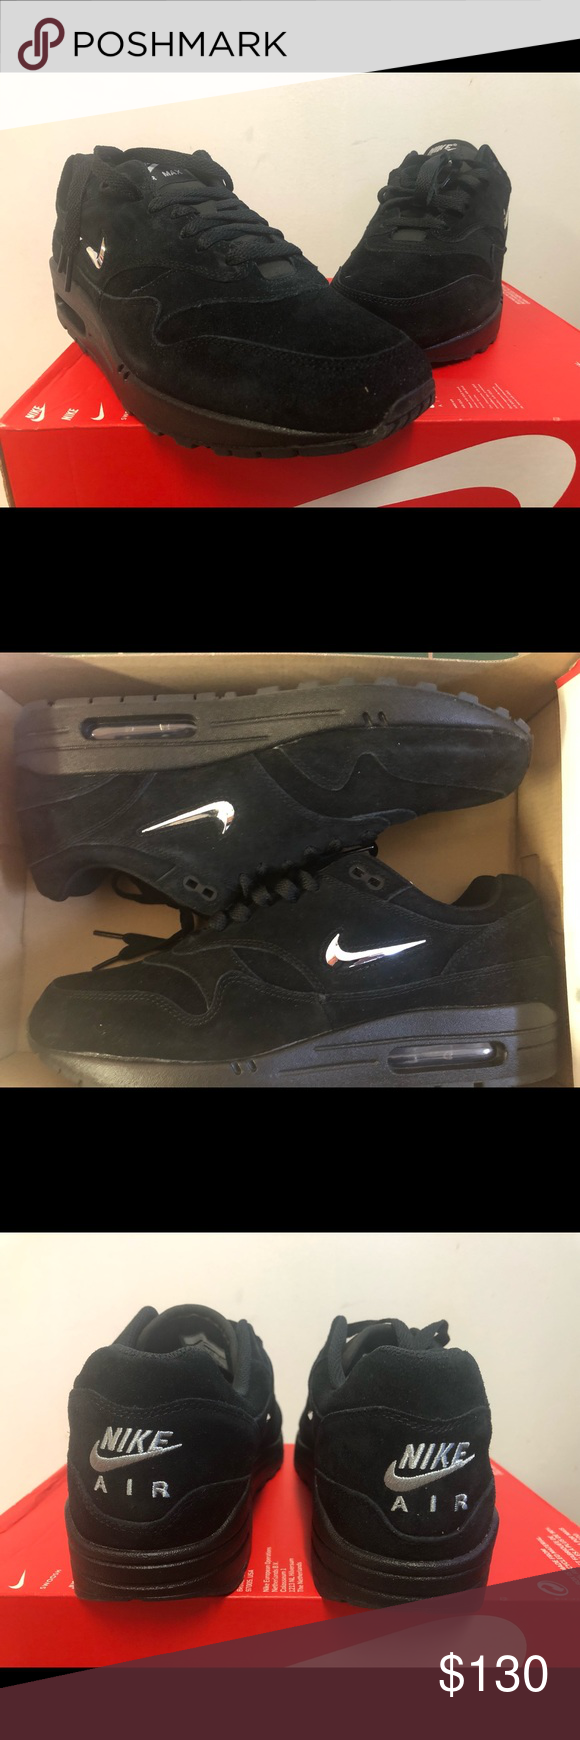 8796673e9f1 Nike Air Max 1 Premium SC Jewel Black Chrome 100% authentic and deadstock  Box lid